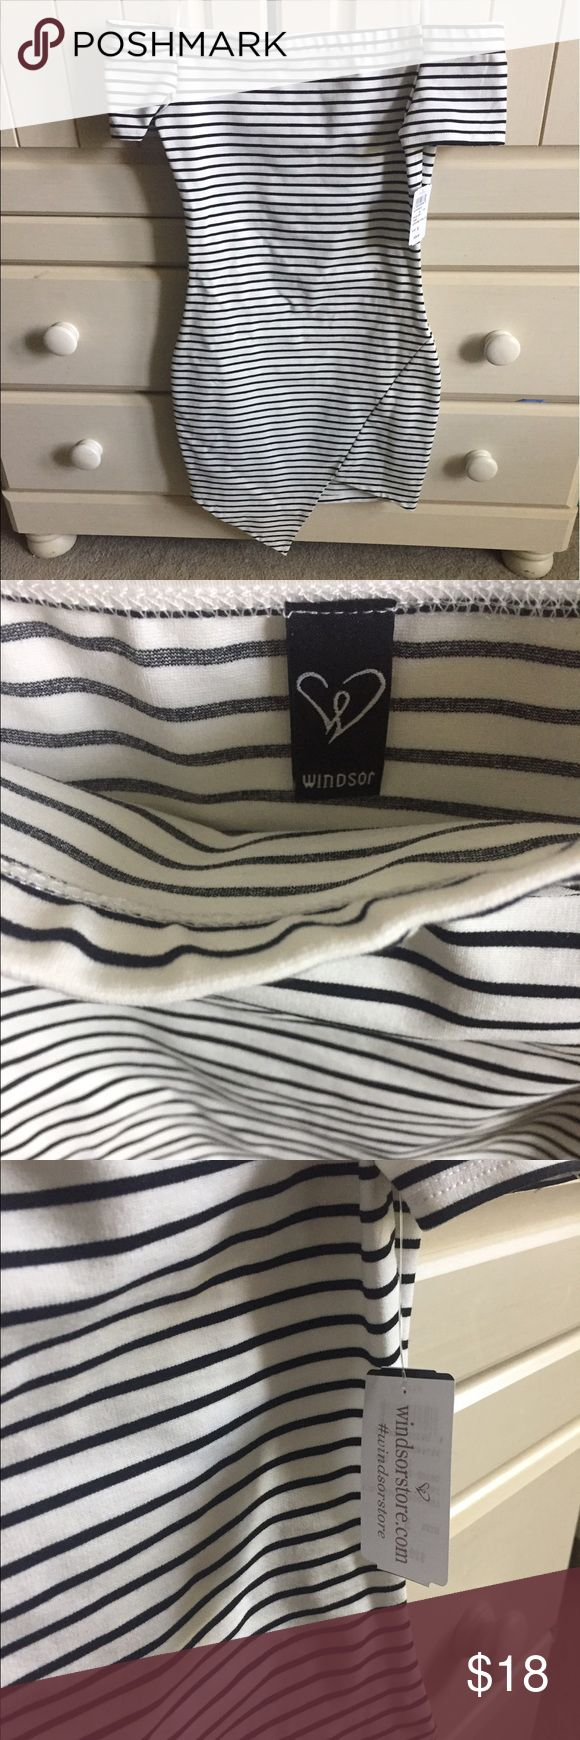 Windsor Dress (NWT) Striped Windsor dress. Off the shoulder. Fitted size small. New With Tags! Windsor Dresses Asymmetrical